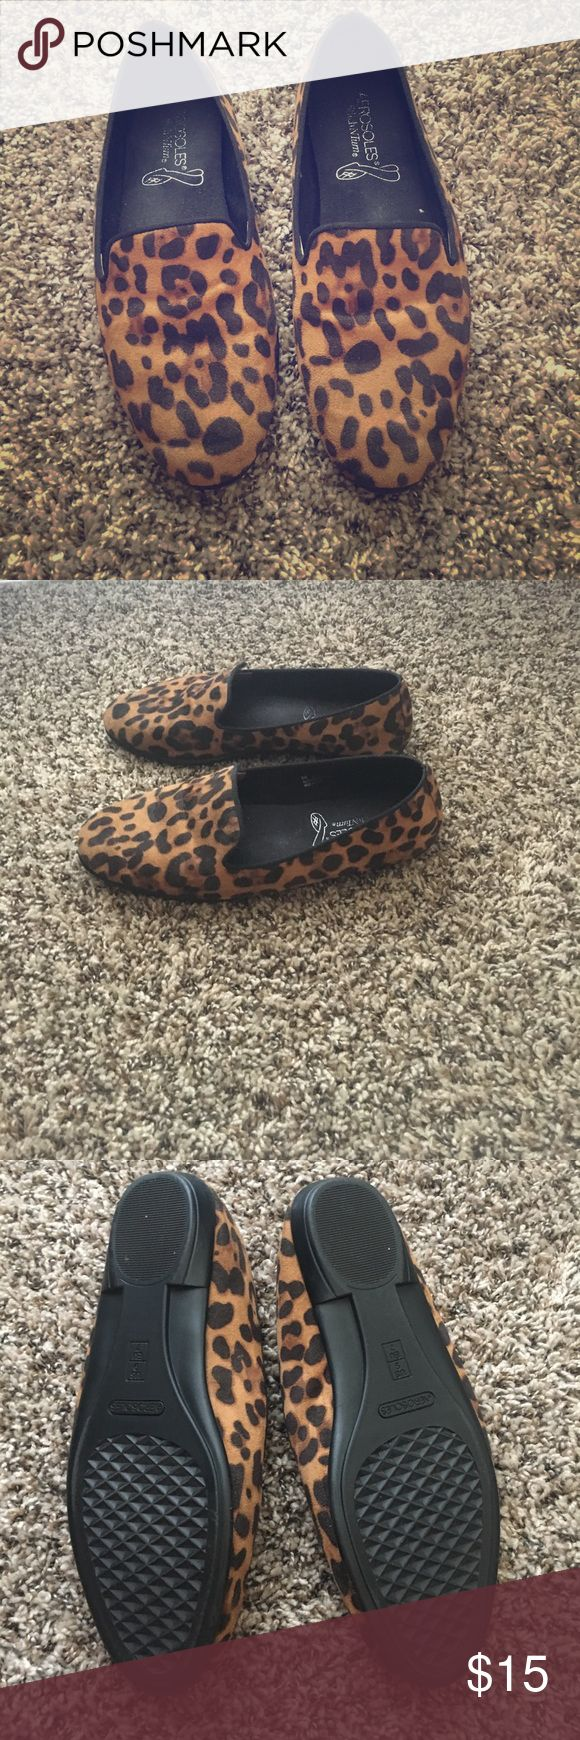 Leopard Print Loafer Size 9 Aerosoles This adorable leopard print loafer is stylish and comfortable. Worn once, they are in great condition! AEROSOLES Shoes Flats & Loafers